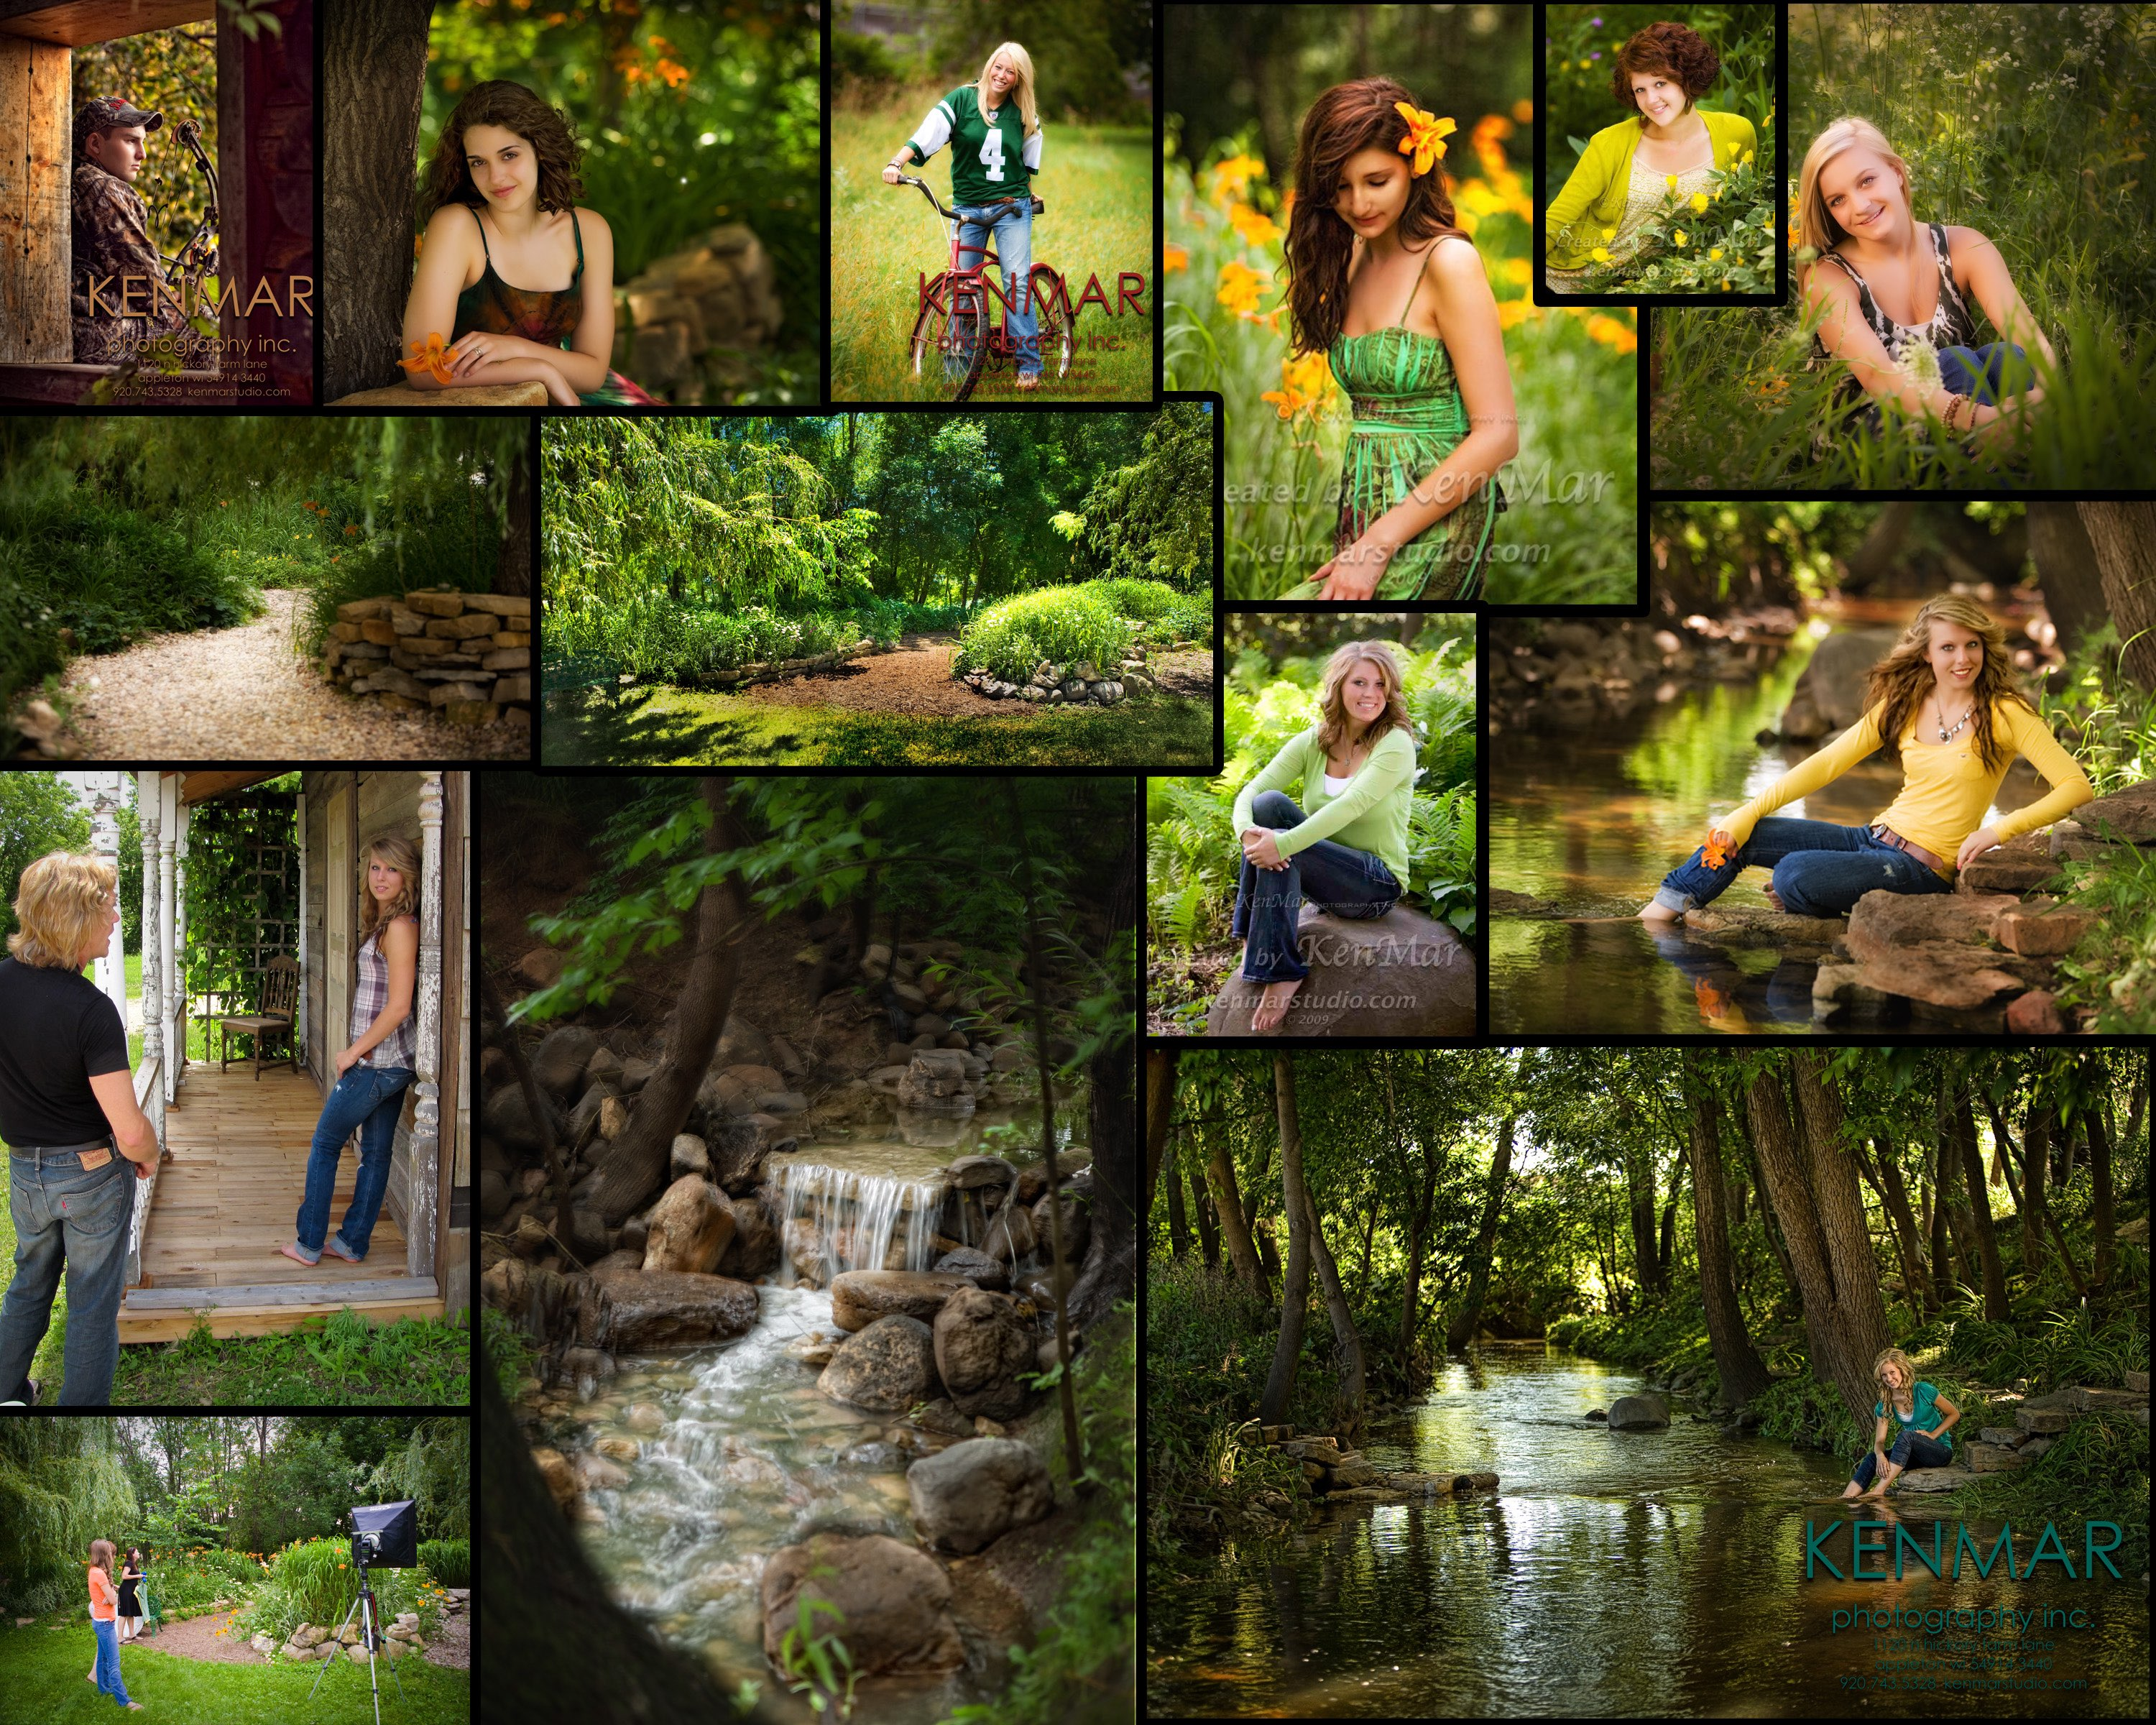 All these image were created at KenMar Gardens!